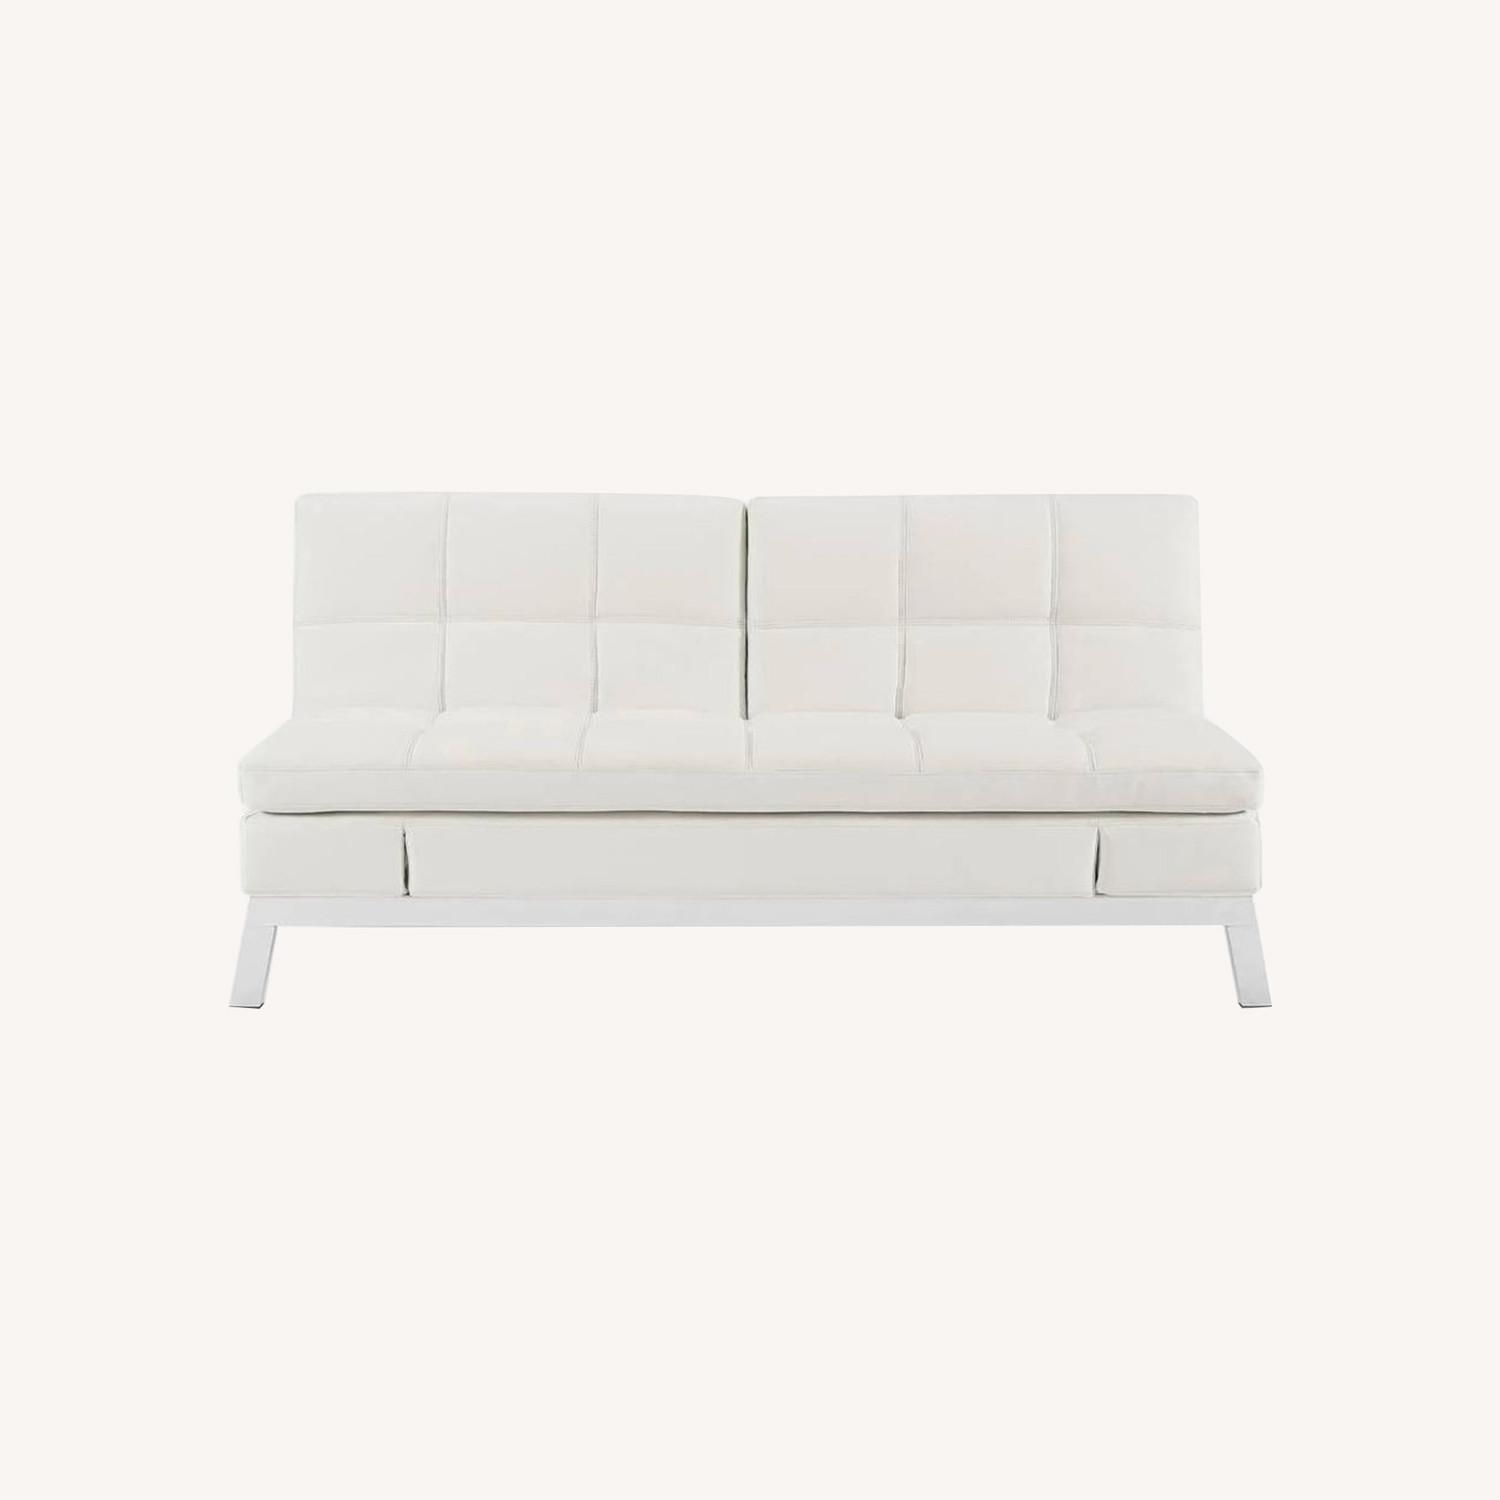 Coddle Toggle Convertible Couch Perl/White Leather - image-0